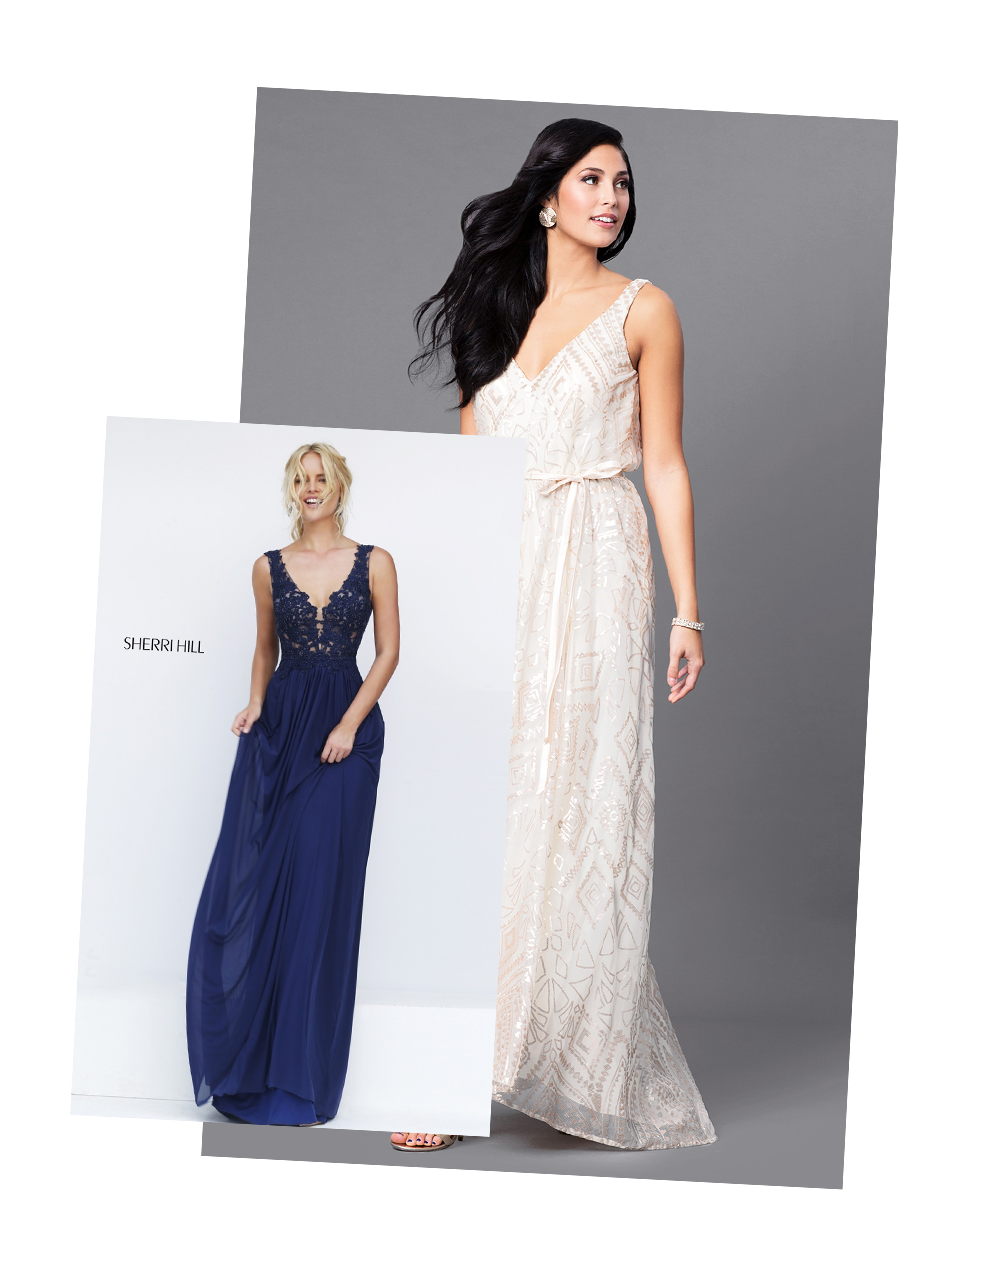 2018 Prom Dress Styles And Trends Promgirl